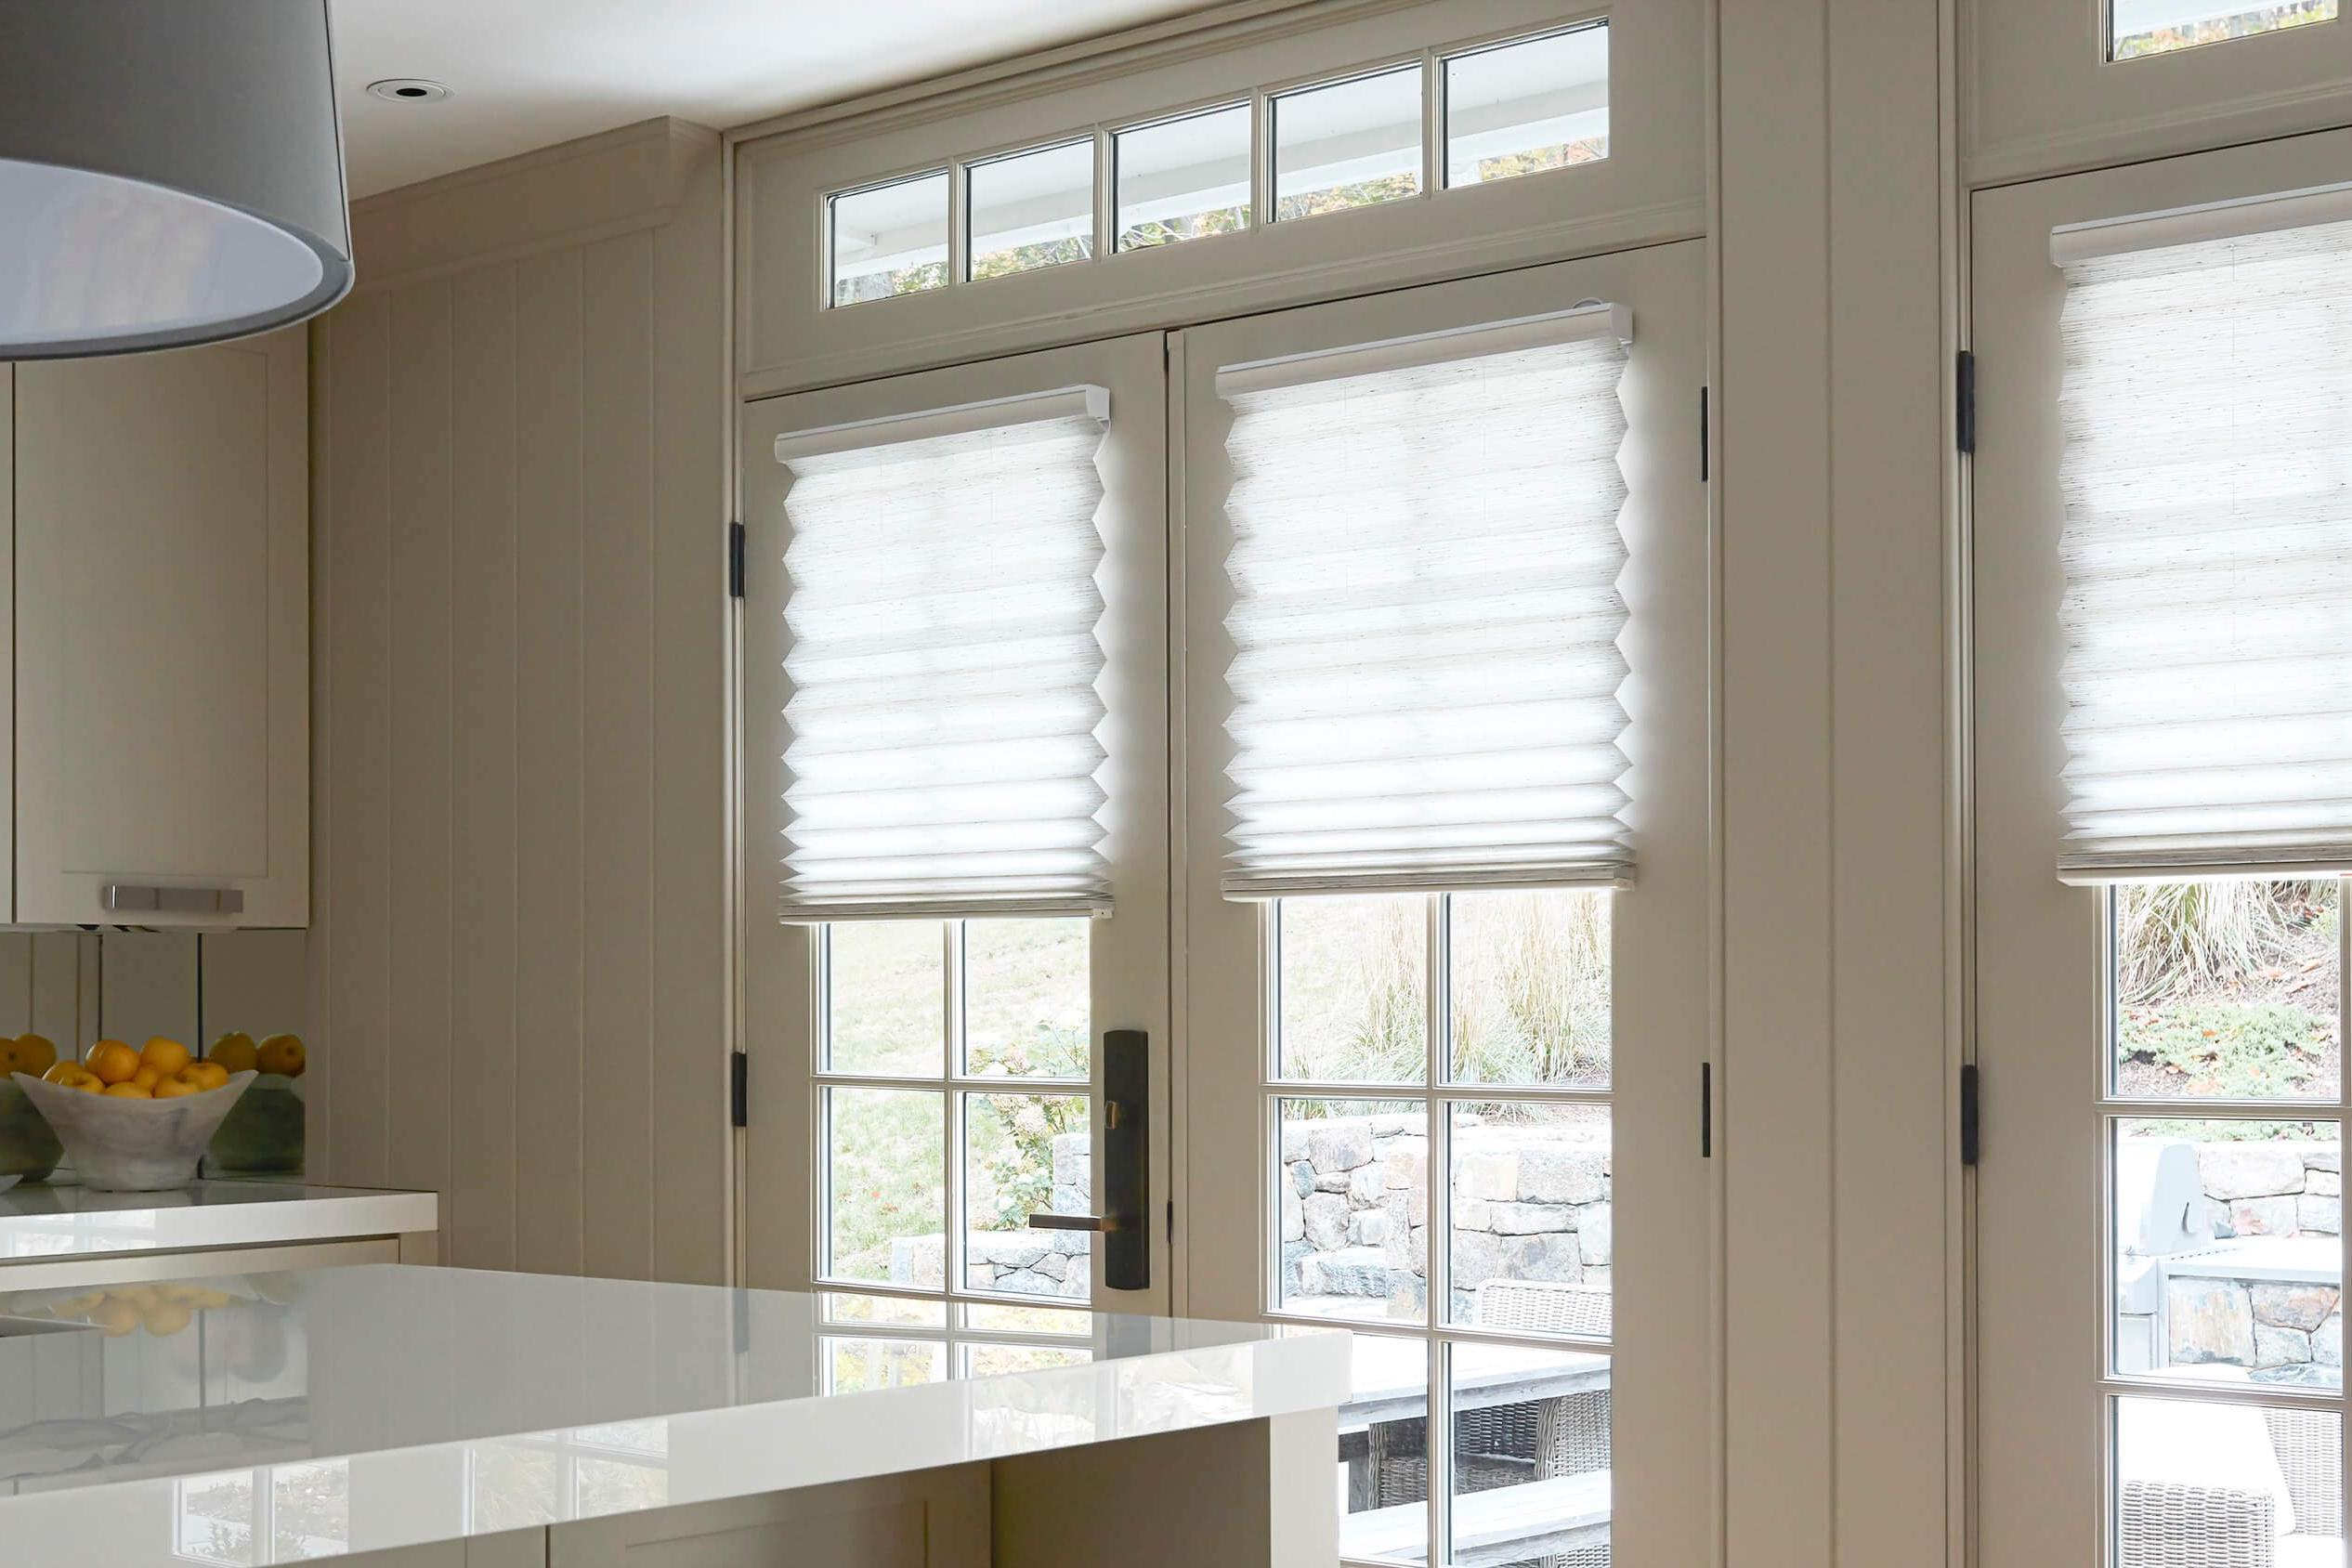 A close up of white pleated shades halfway down on a window